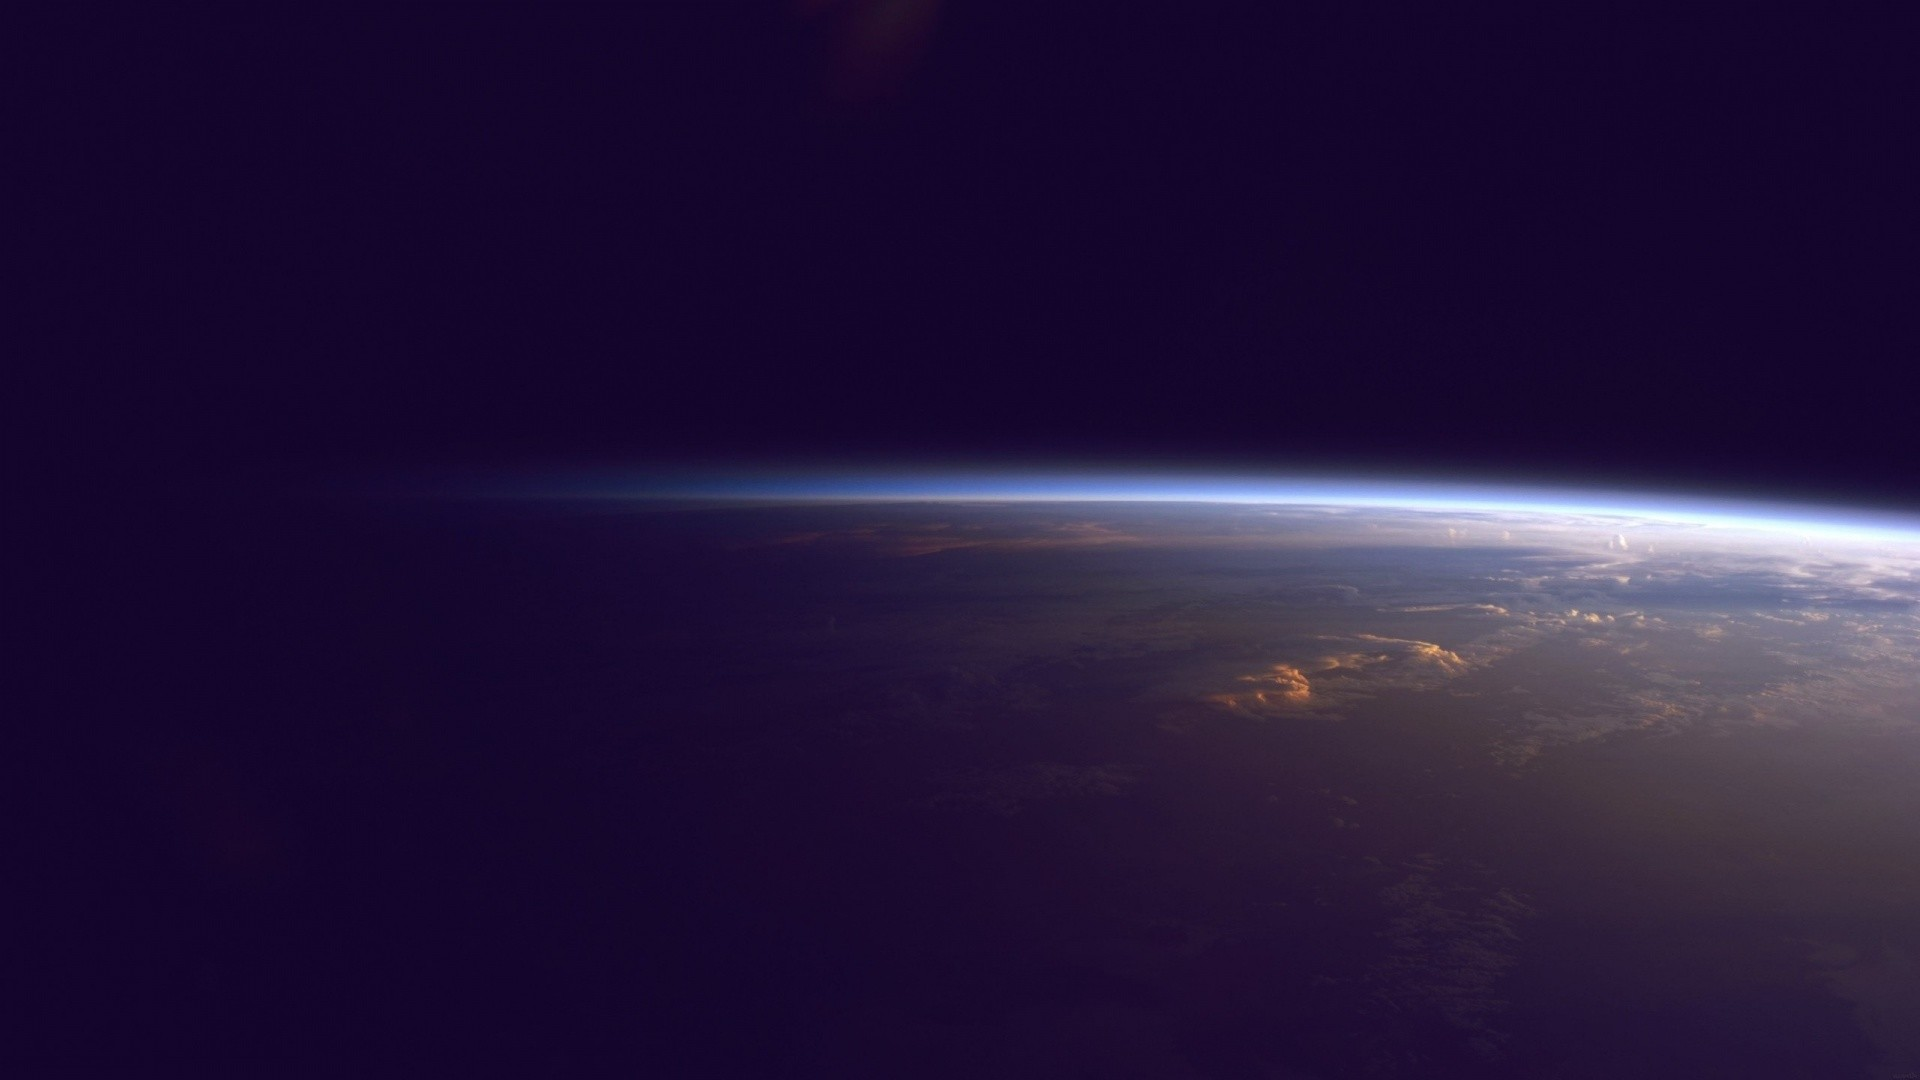 Earth Horizon from Outer Space